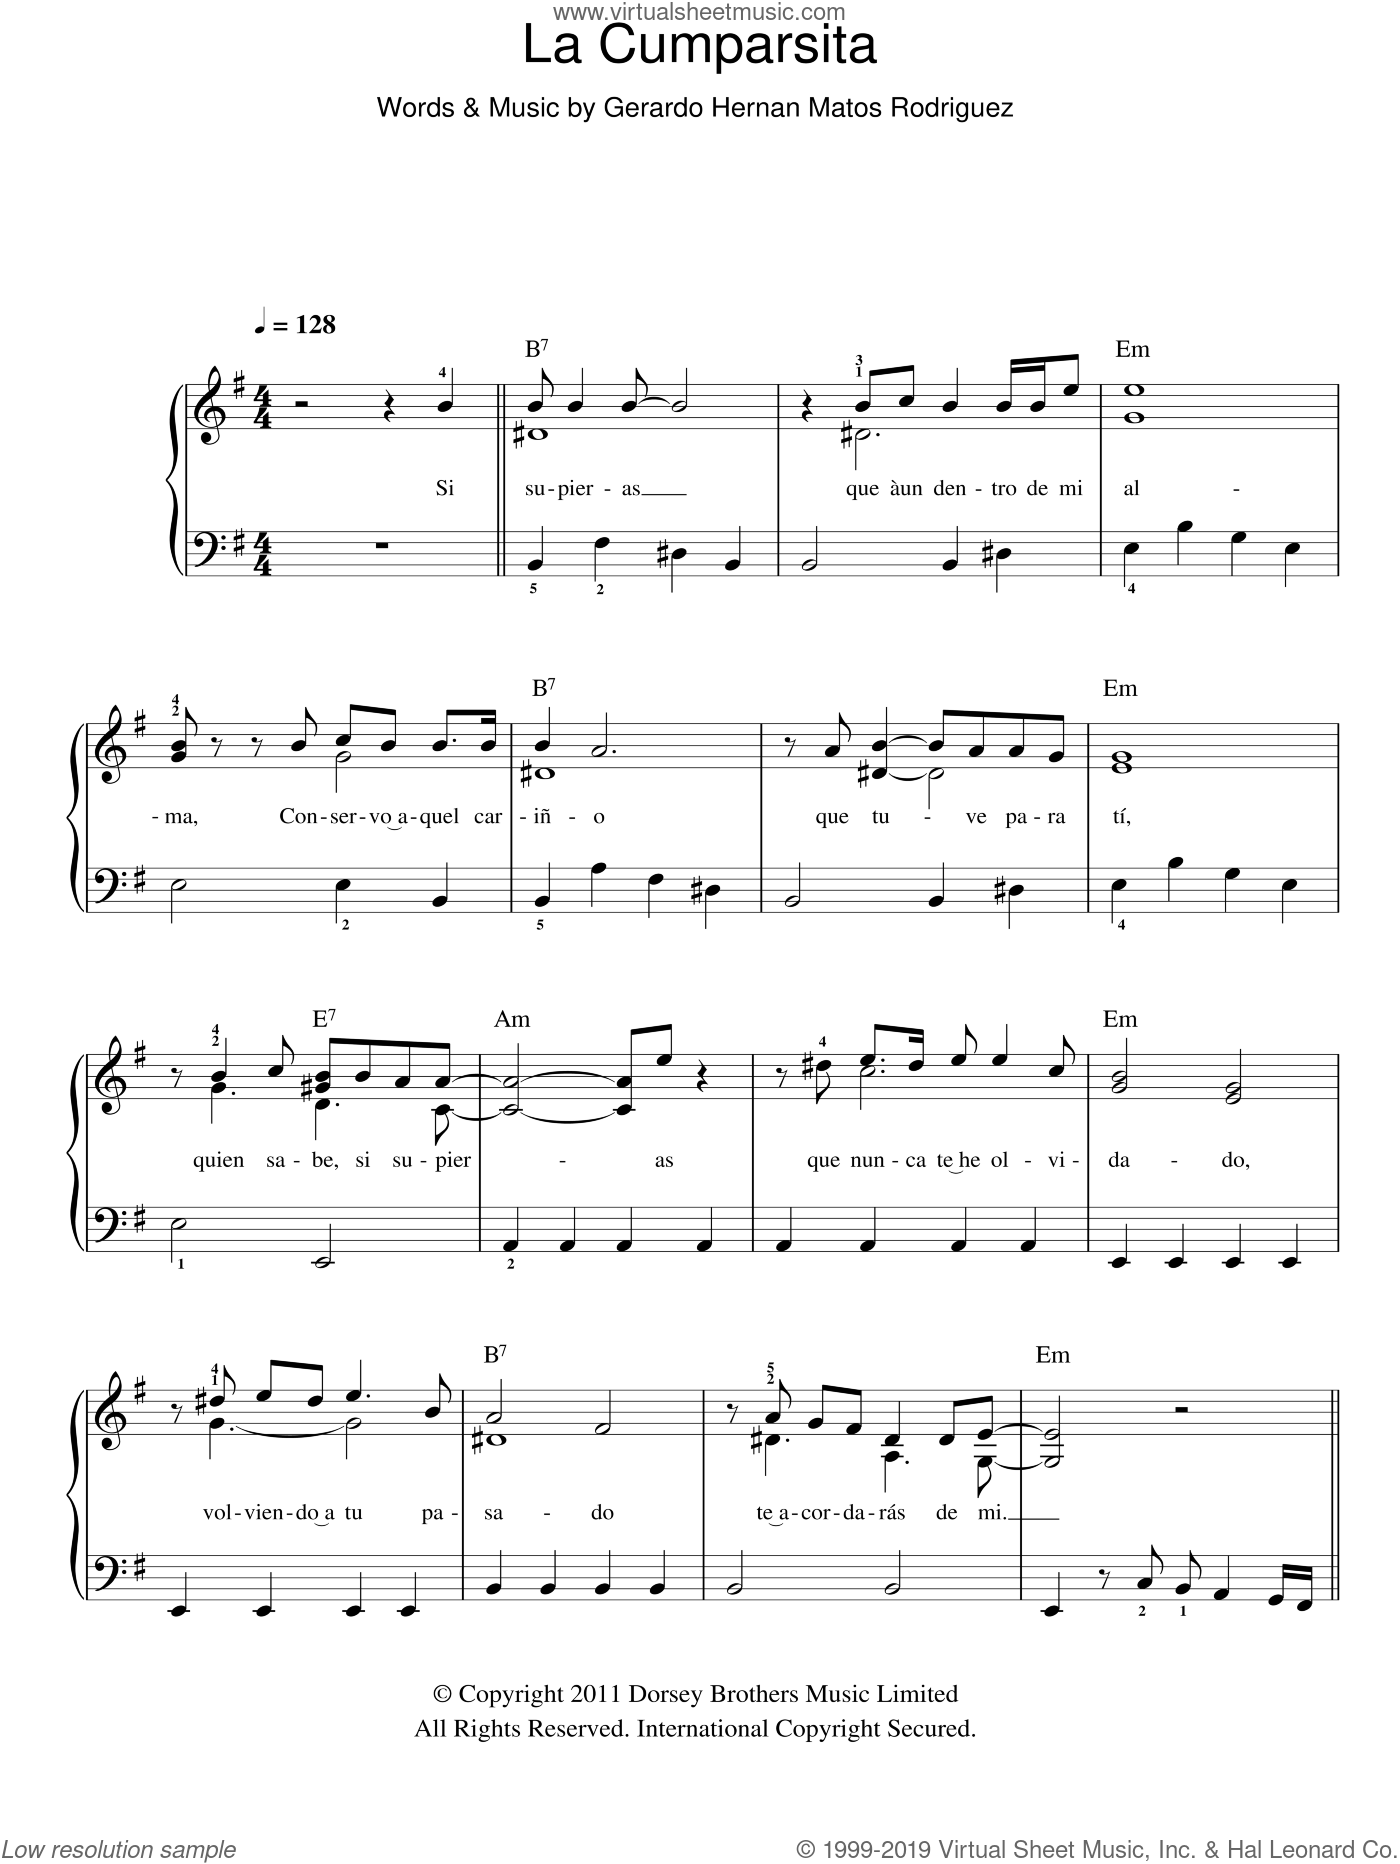 La Cumparsita sheet music for piano solo by Gerardo Hernan Matos Rodriguez